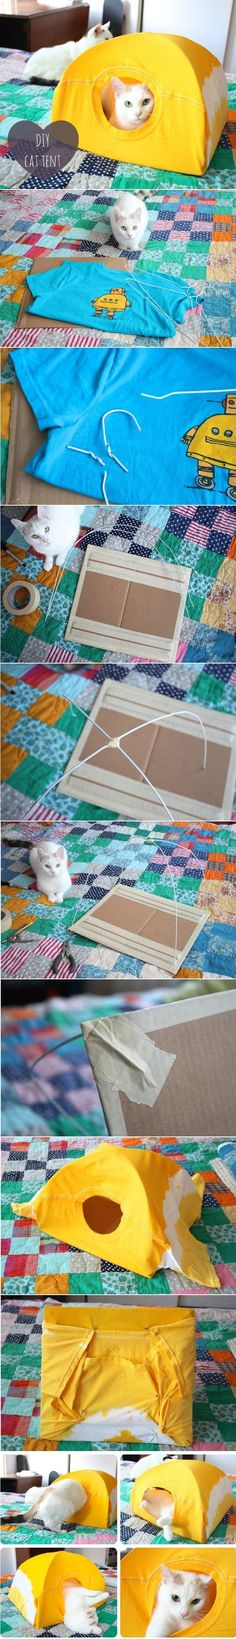 Find and save ideas about Homemade cat toys on Pinterest. | See more ideas about Diy cat toys, Kitten toys and Cat toys.